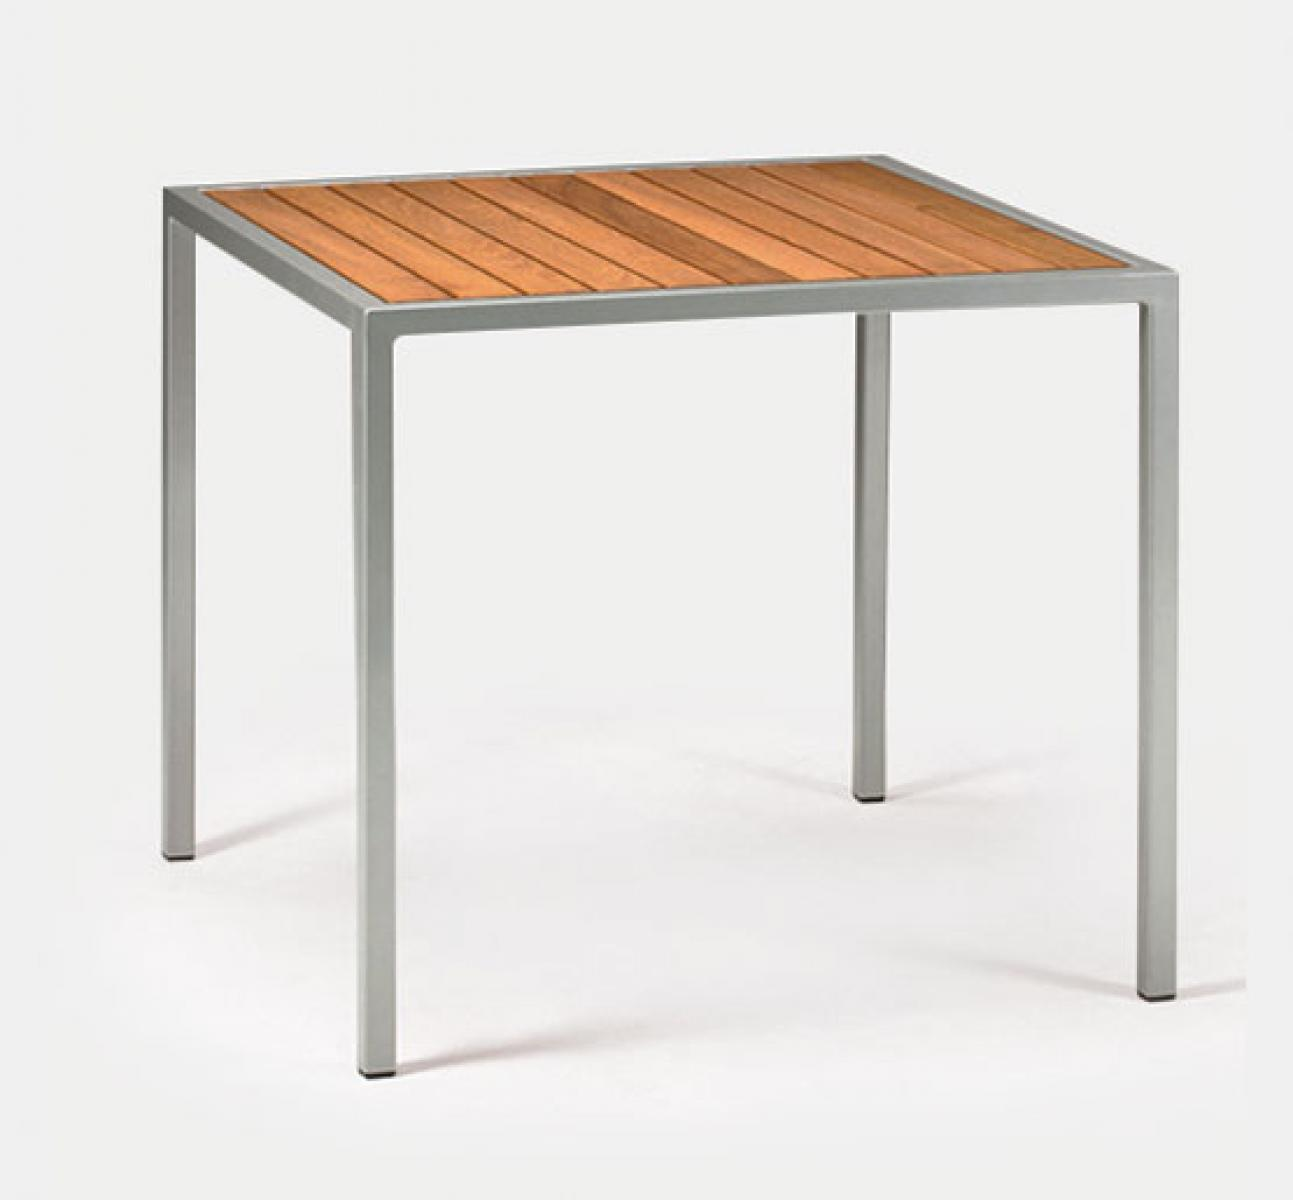 Plaza Outdoor Table (700x700mm)